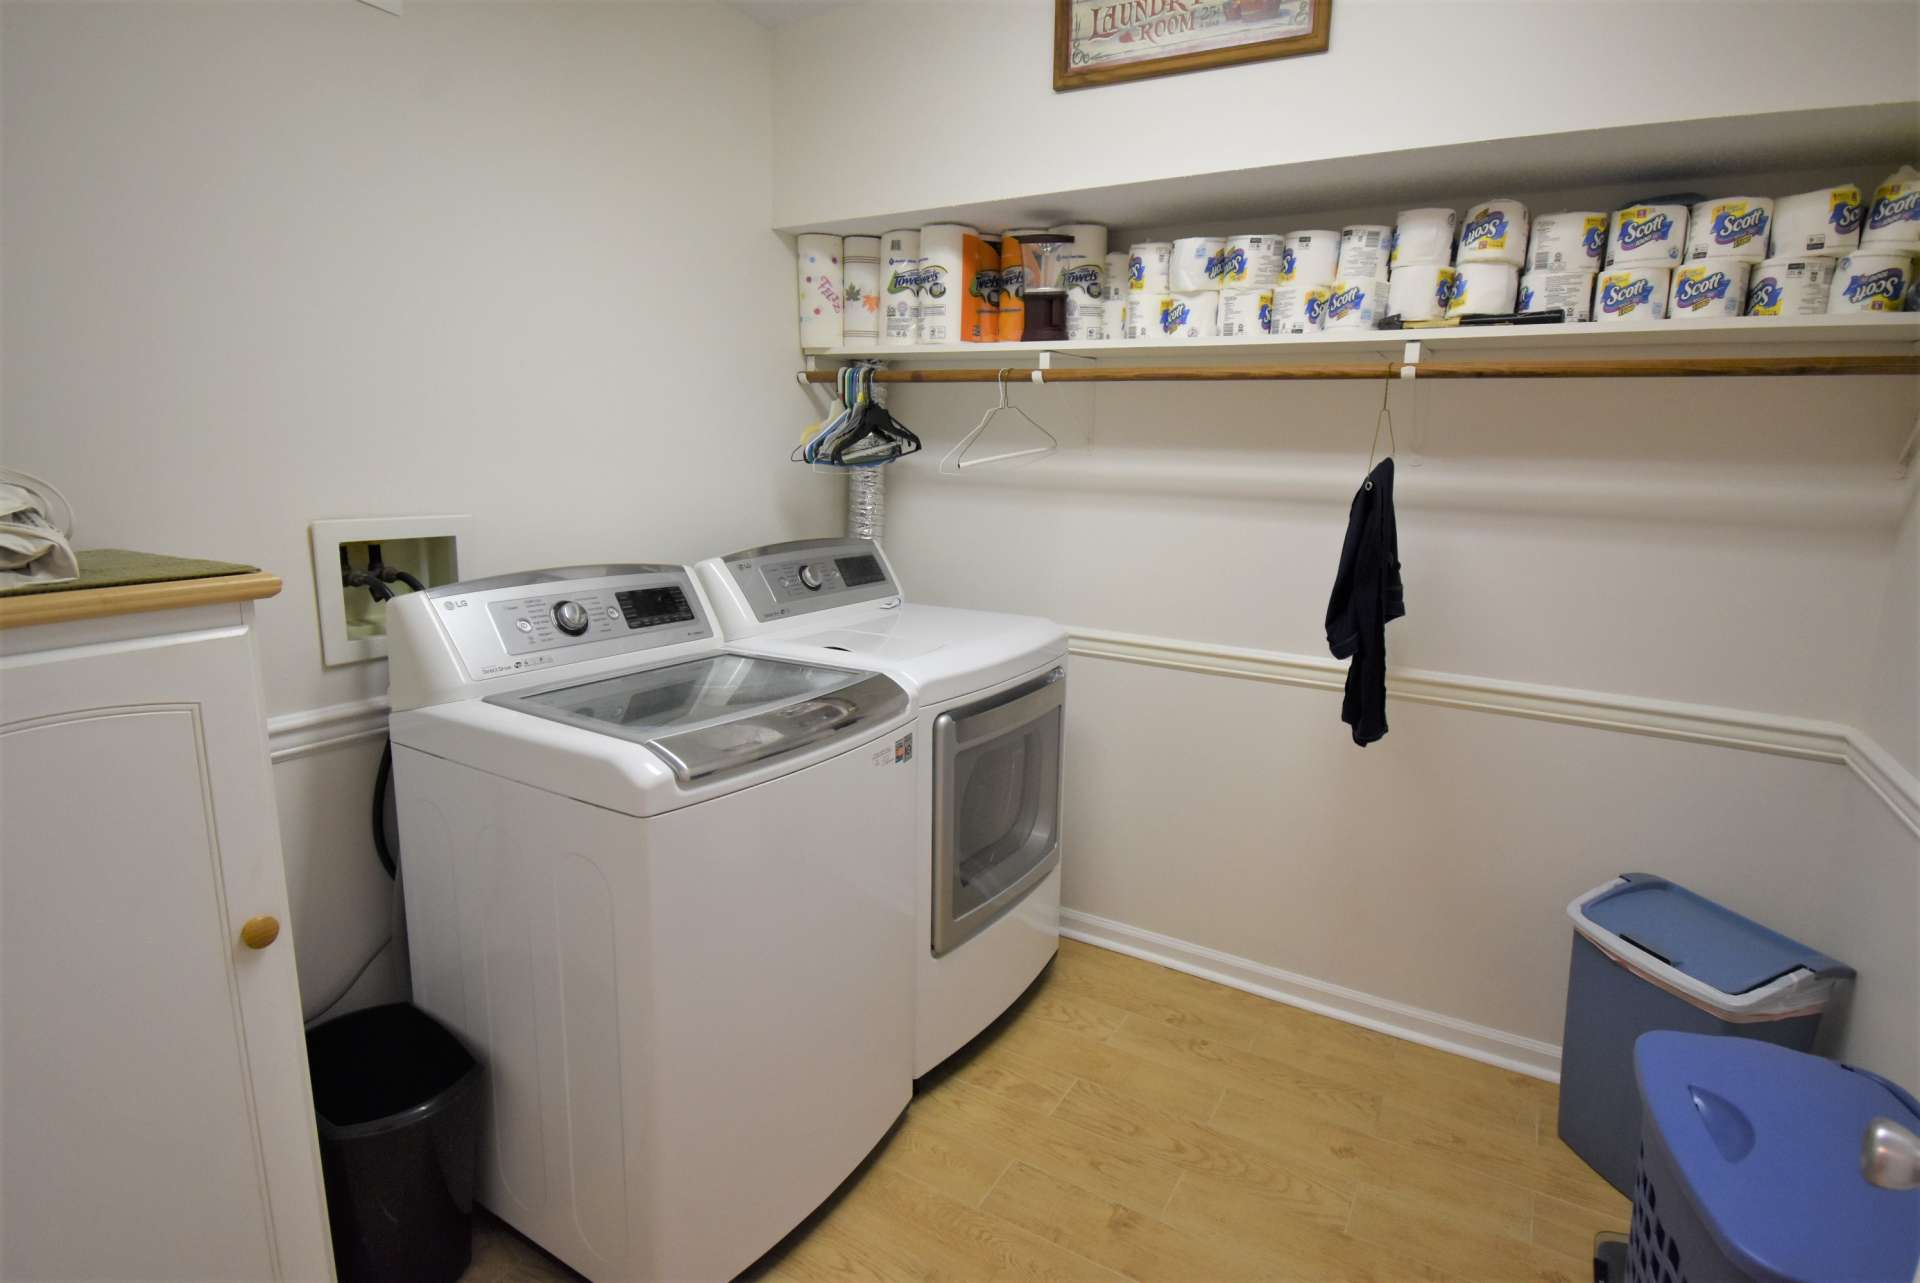 A nice sized laundry room offers additional storage space.